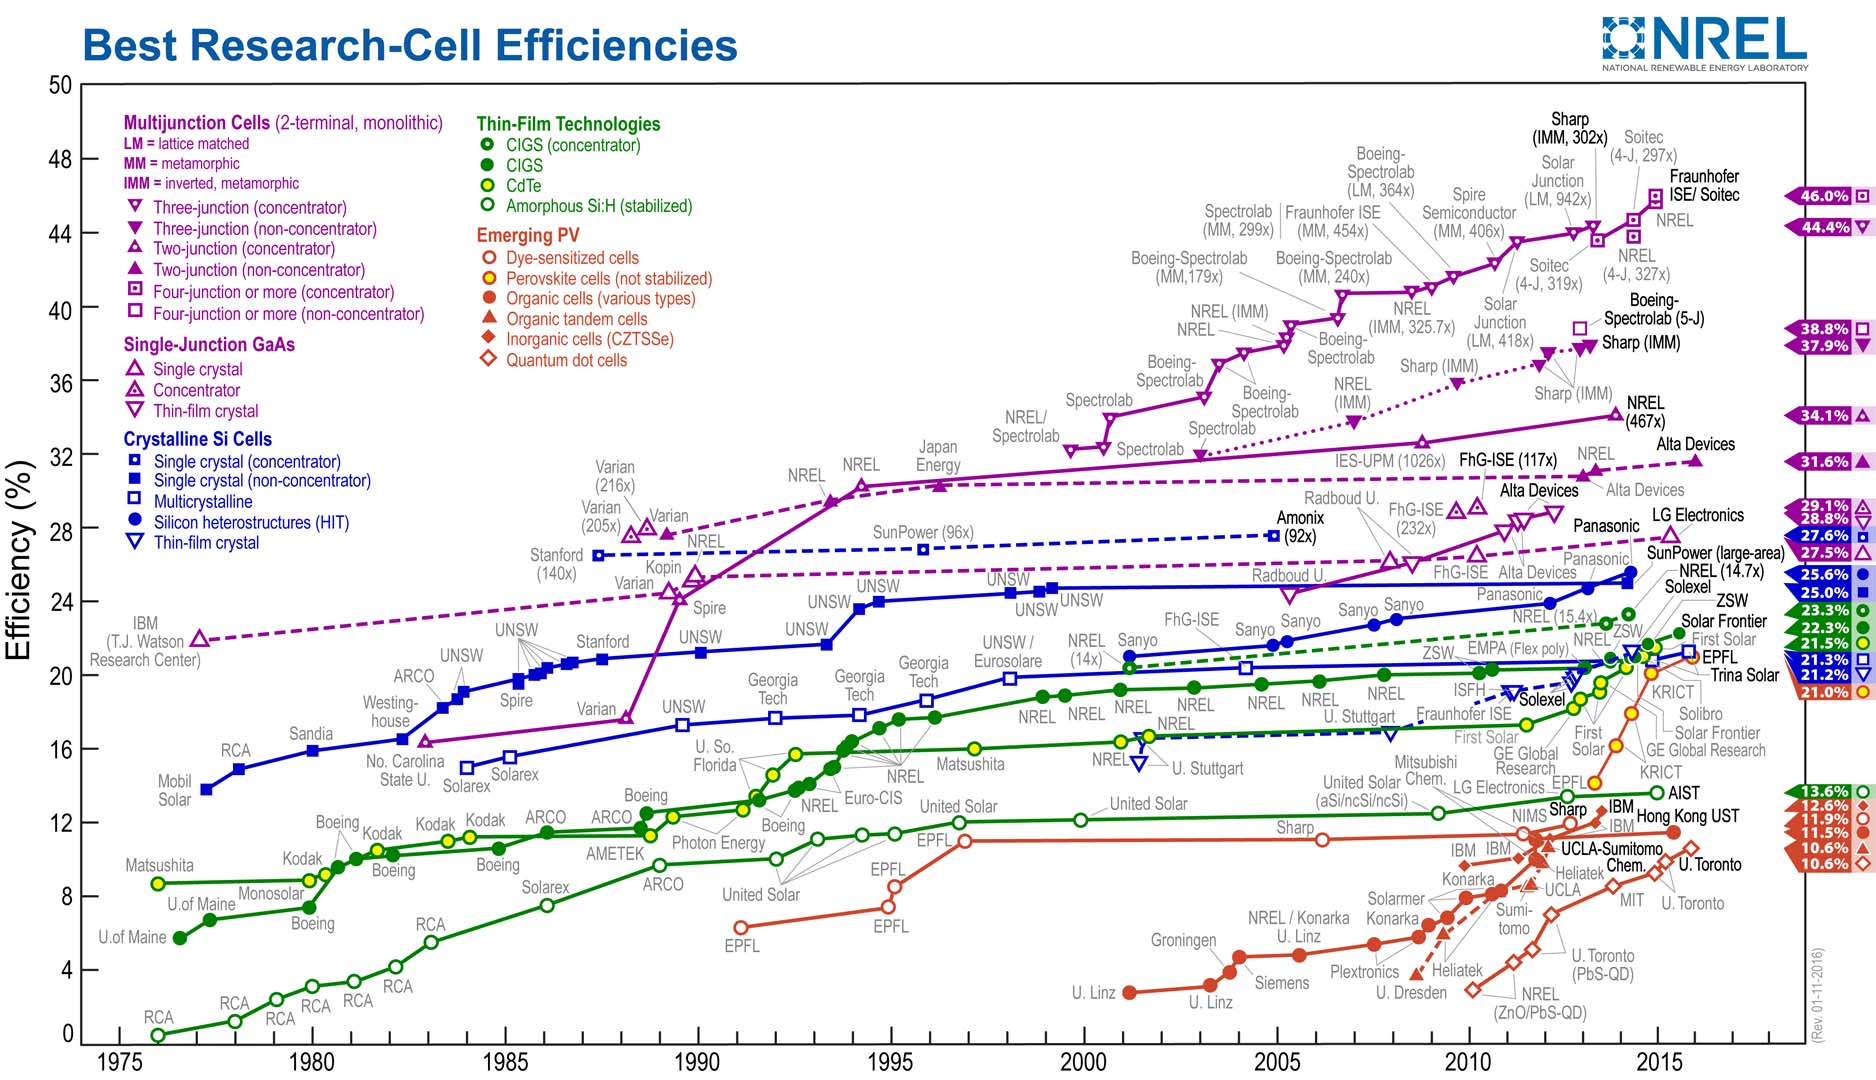 First Solar has set a new world record research cell conversion efficiency of 22.1%, certified at the Newport Corporation's Technology and Applications Center (TAC) PV Lab.